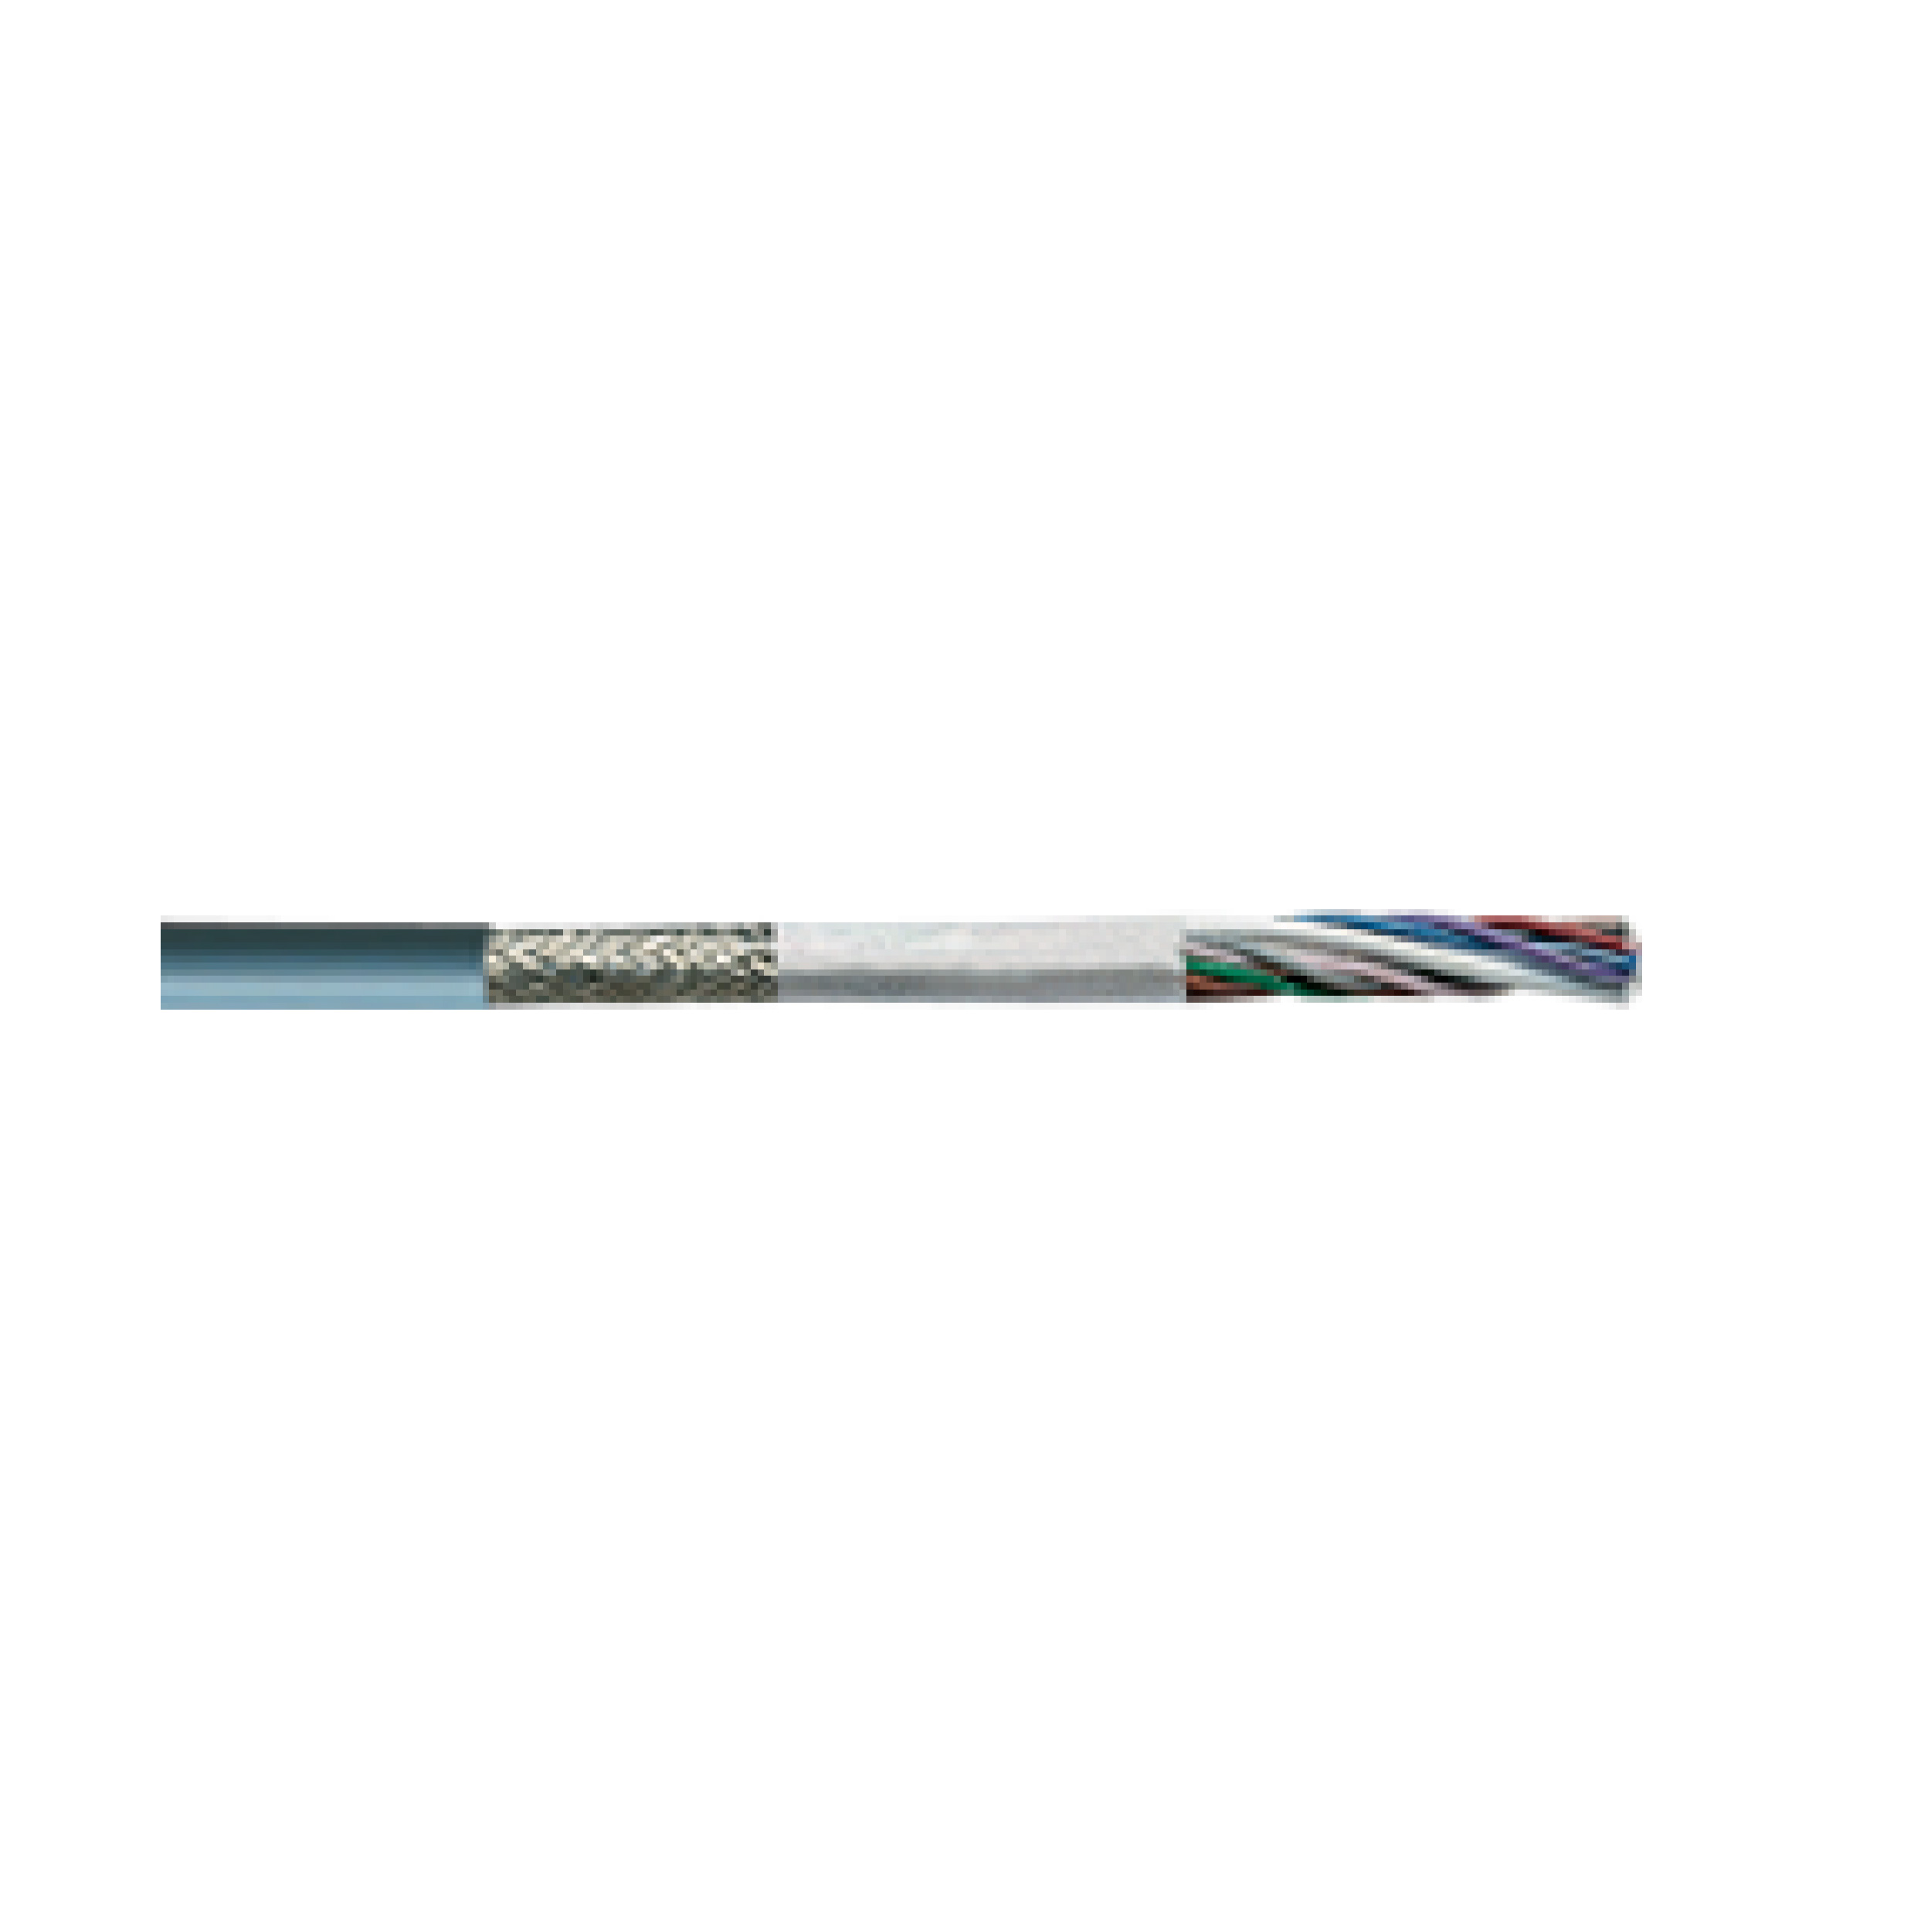 Extra-Flexible Cables/Multiconductor Control Cables